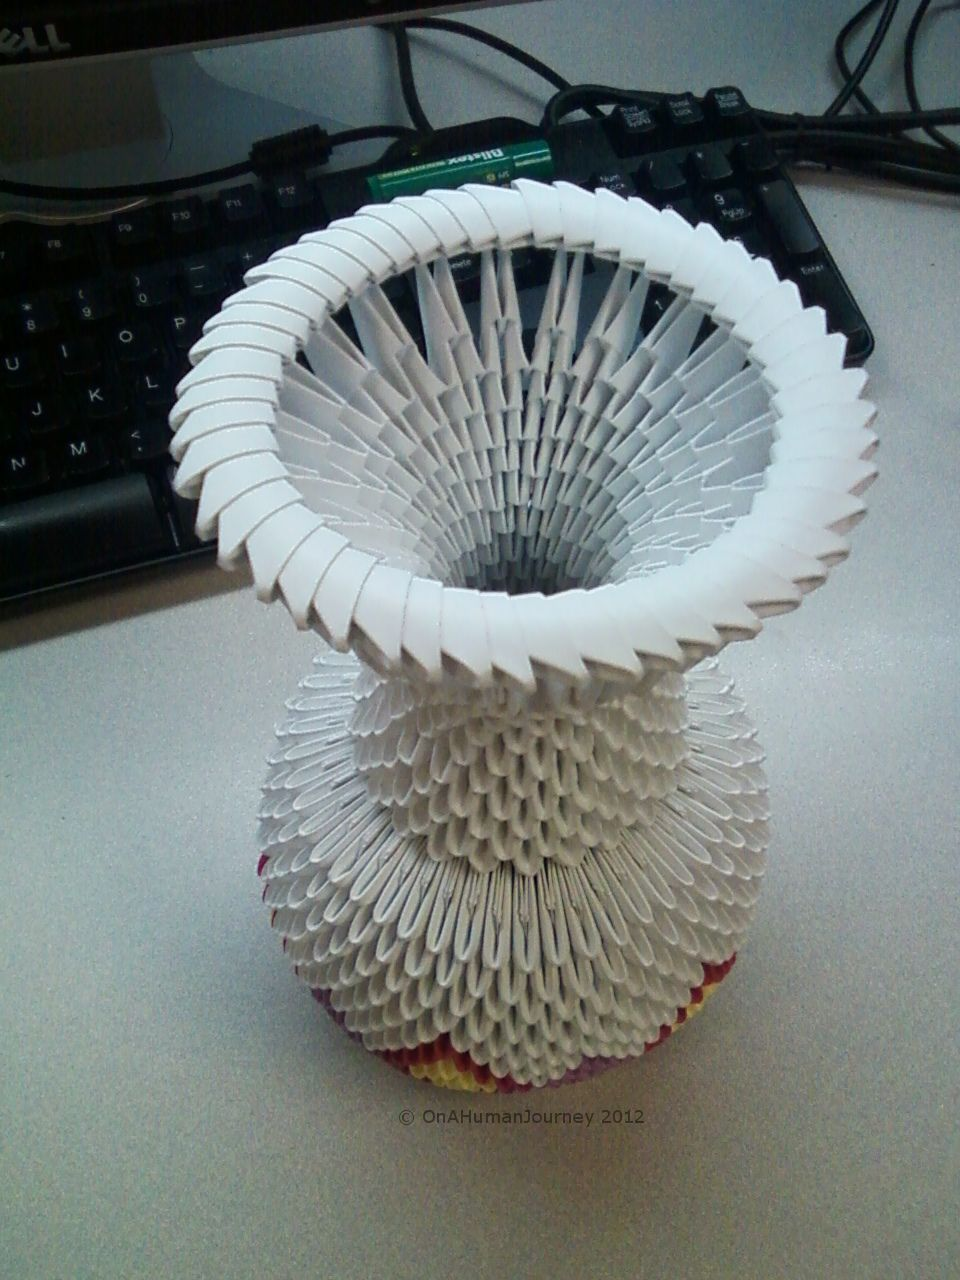 How To Build A 3d Origami Vase 3d Origami Pinterest 3d Origami